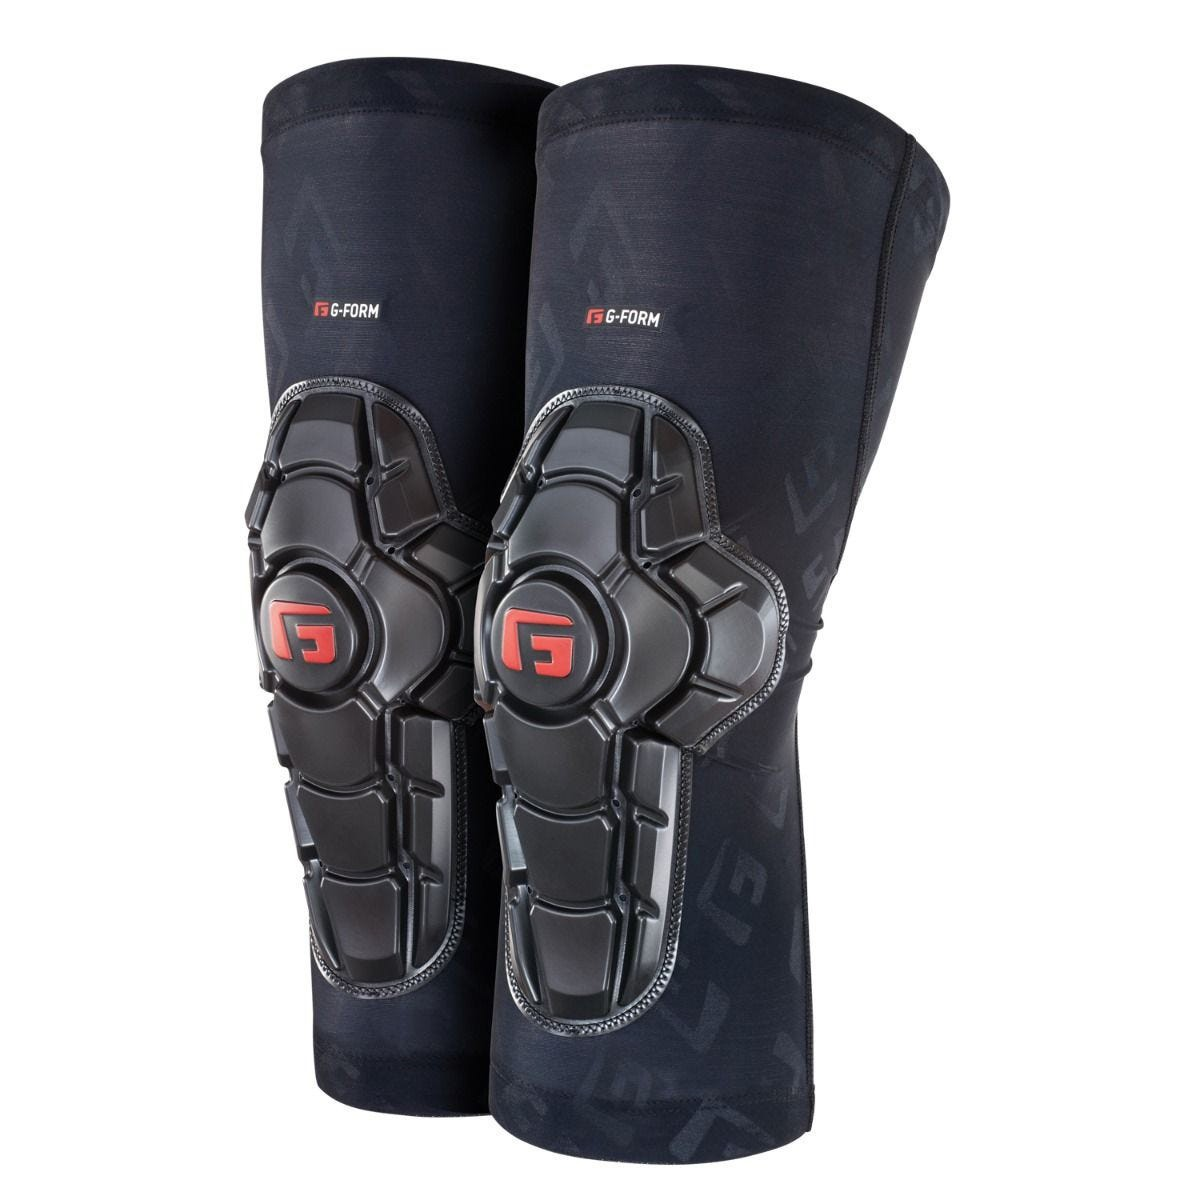 G-FORM PRO-X2 KNEE GUARDS